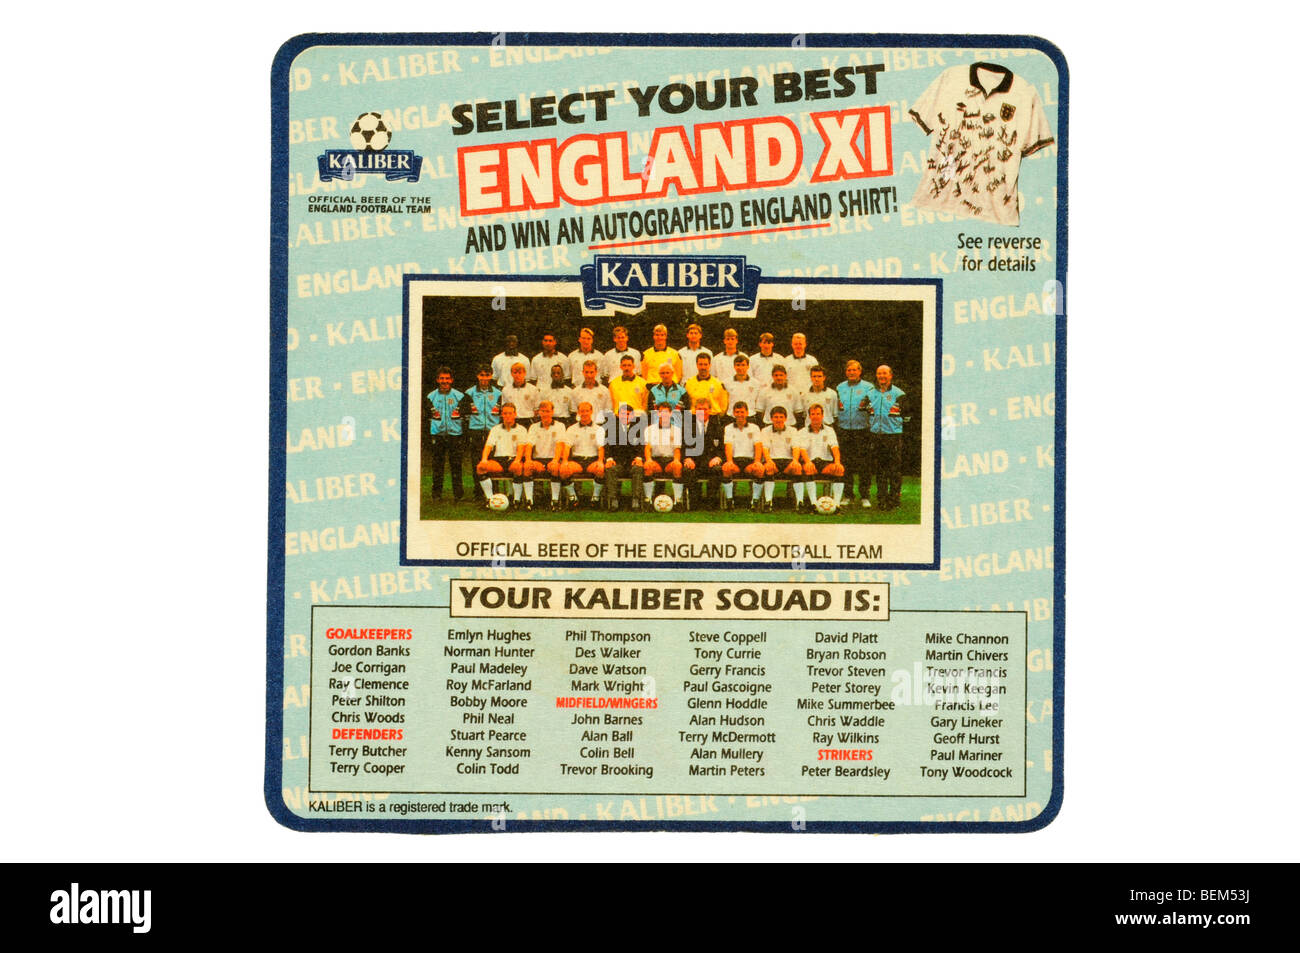 kaliber select your best england xi - Stock Image